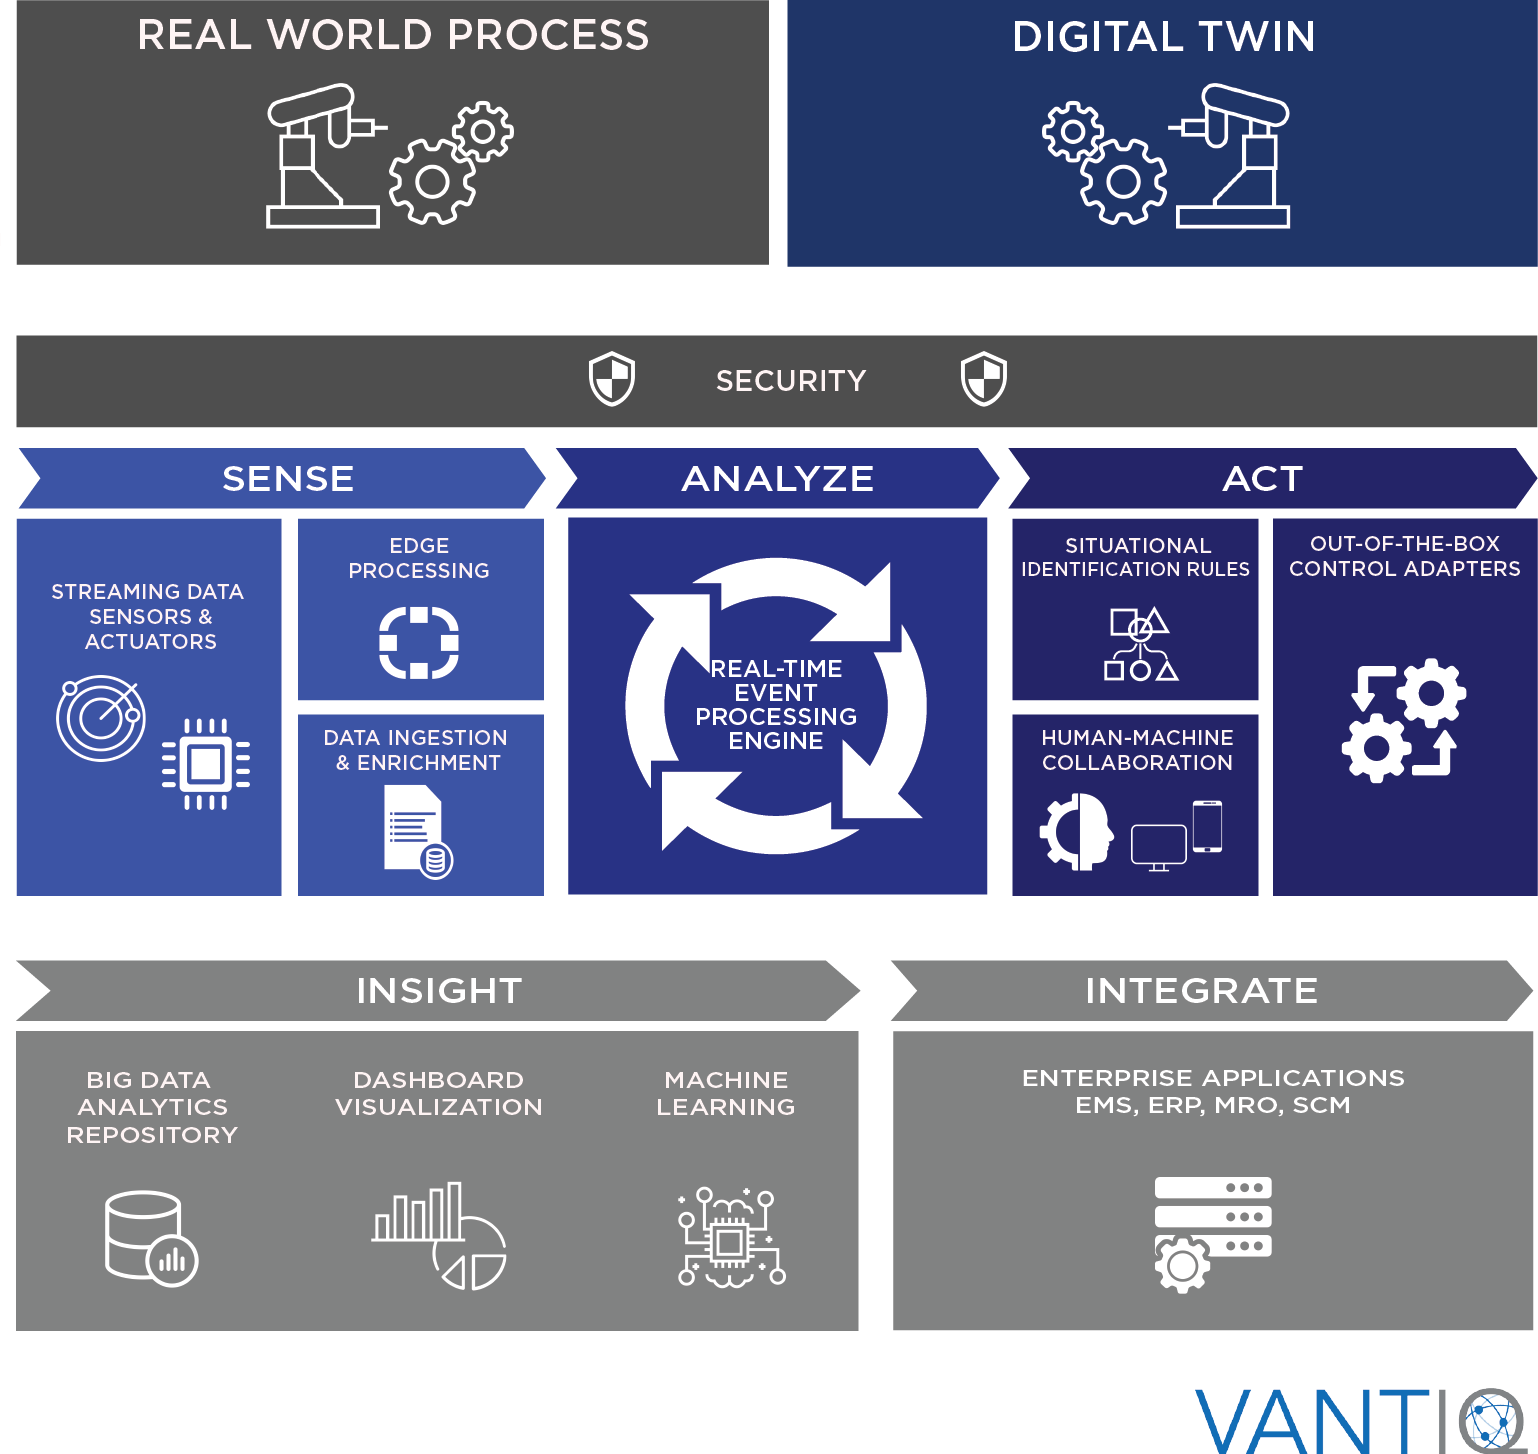 Chart showing VANTIQ's solution with sense, analyze, act, insight, integrate